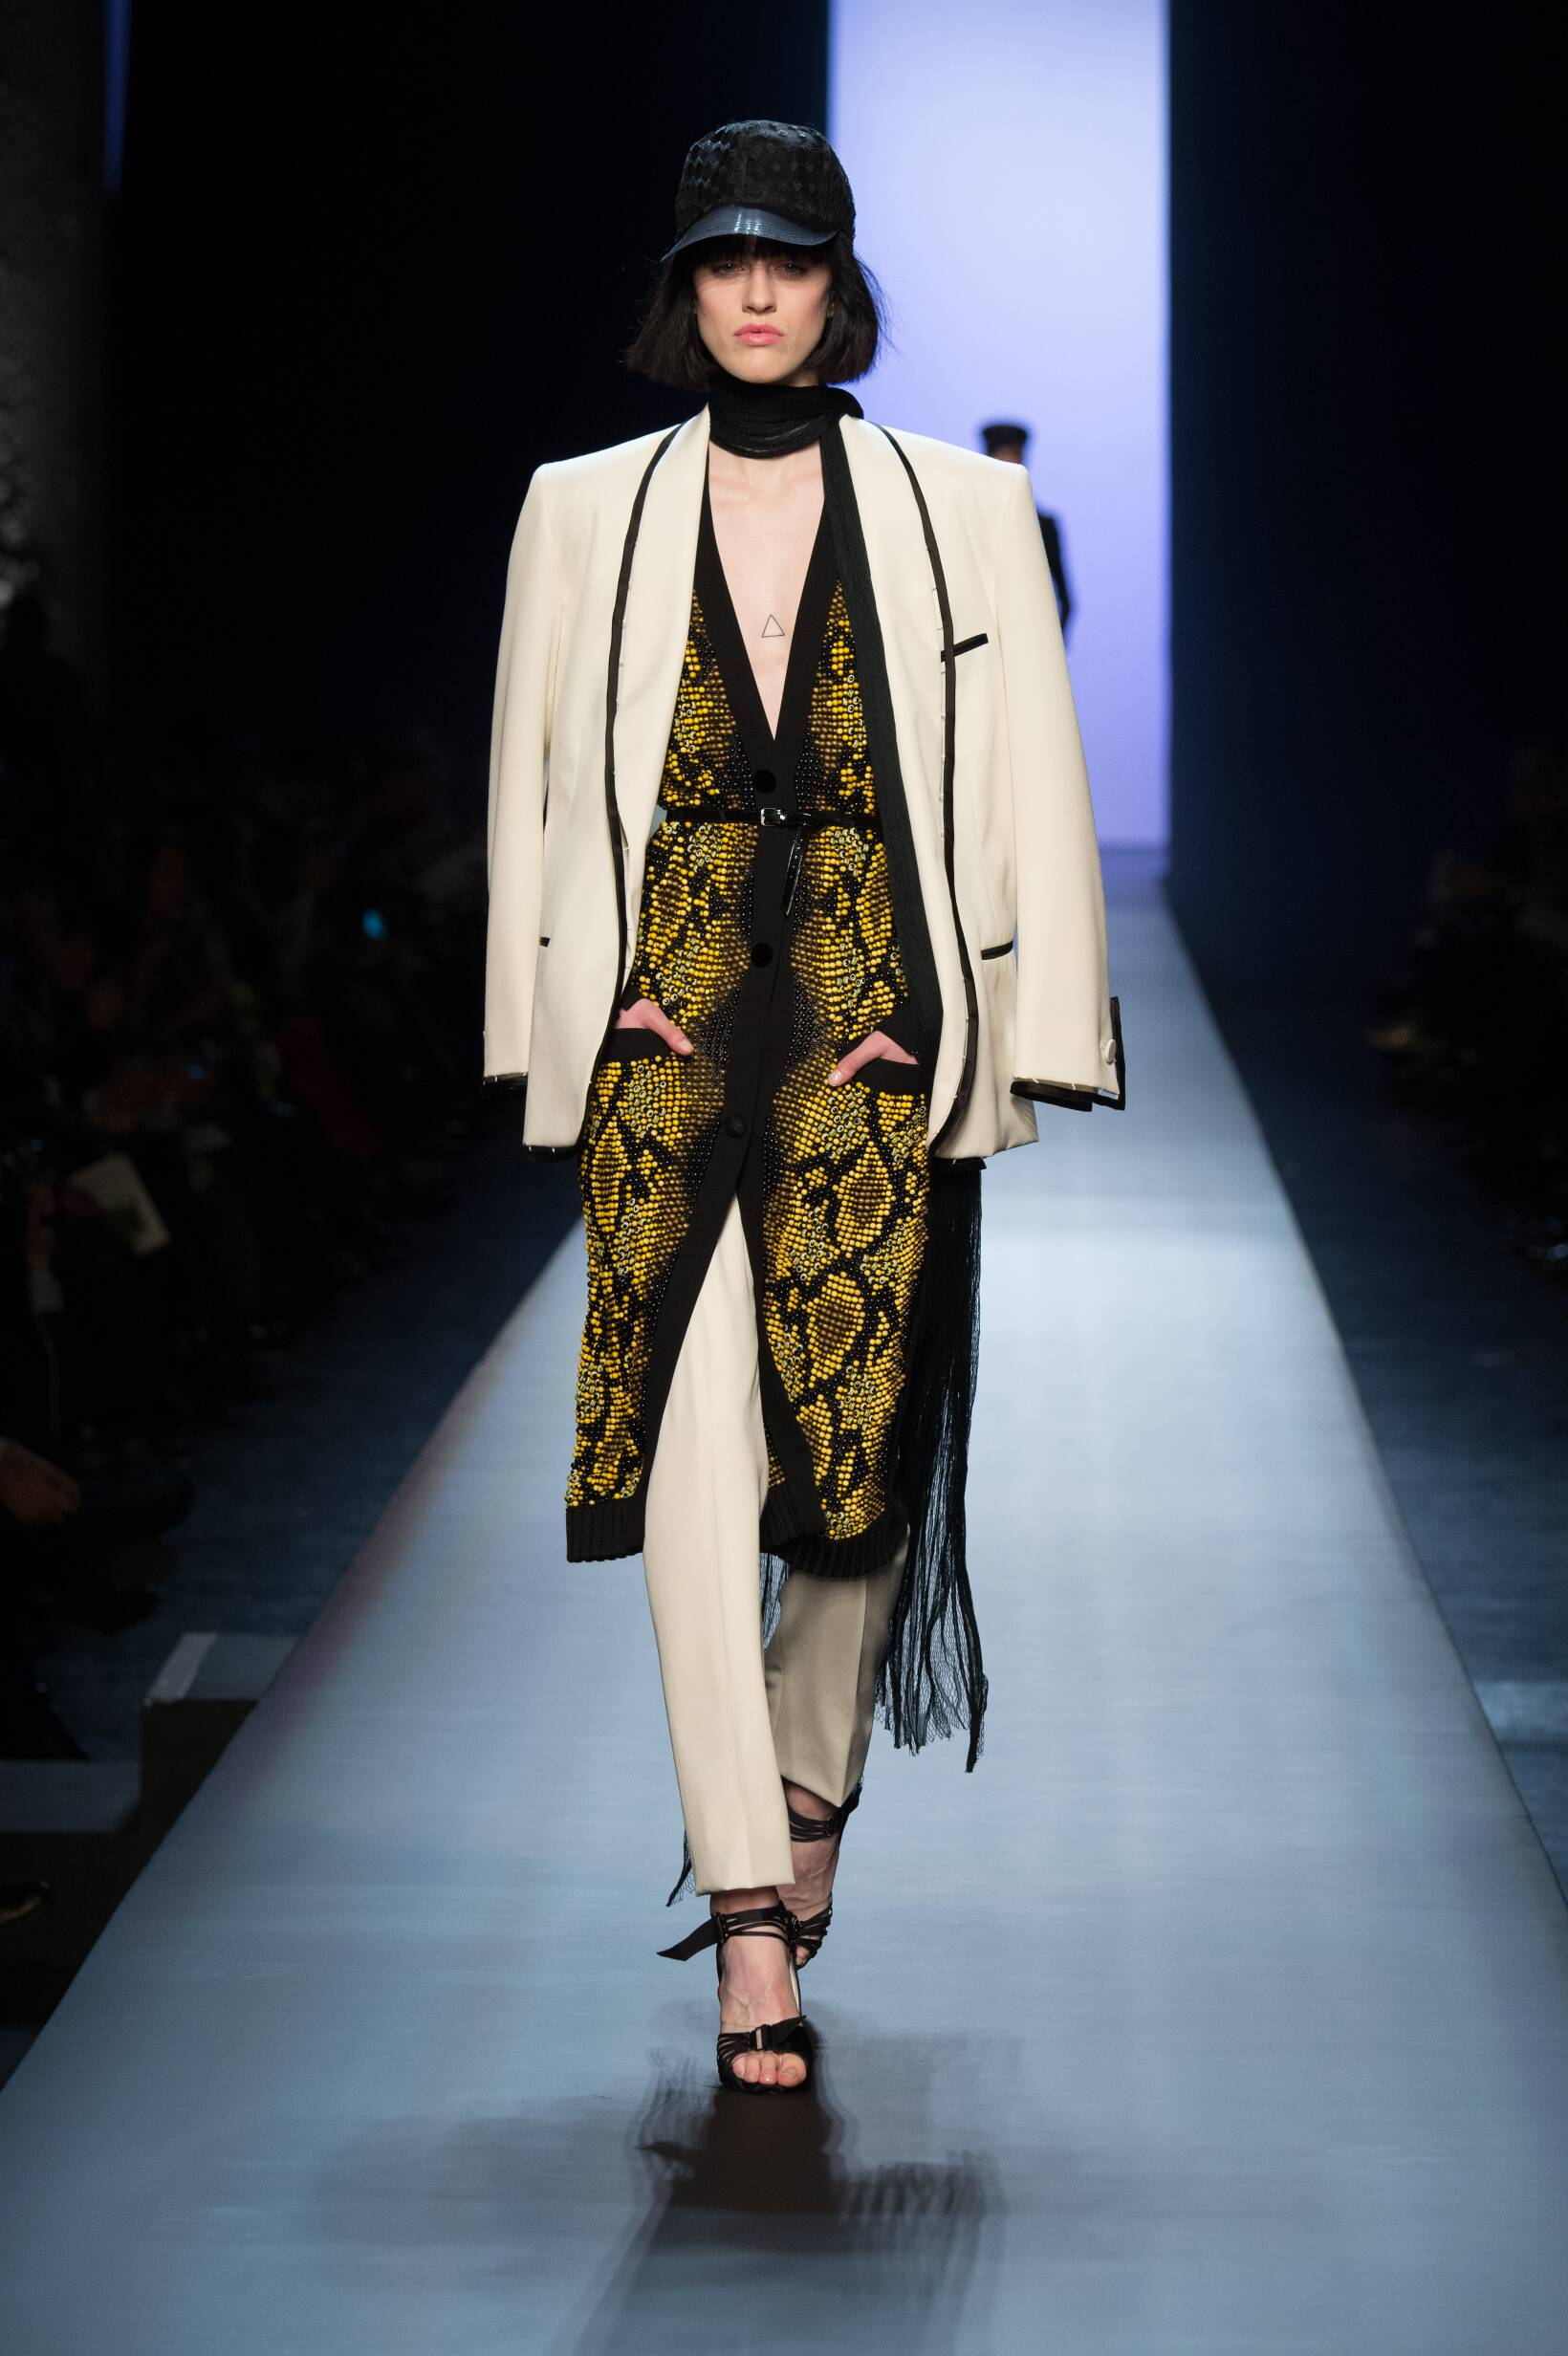 Runway Jean Paul Gaultier Haute Couture Spring Summer 2015 Women's Collection Paris Fashion Week